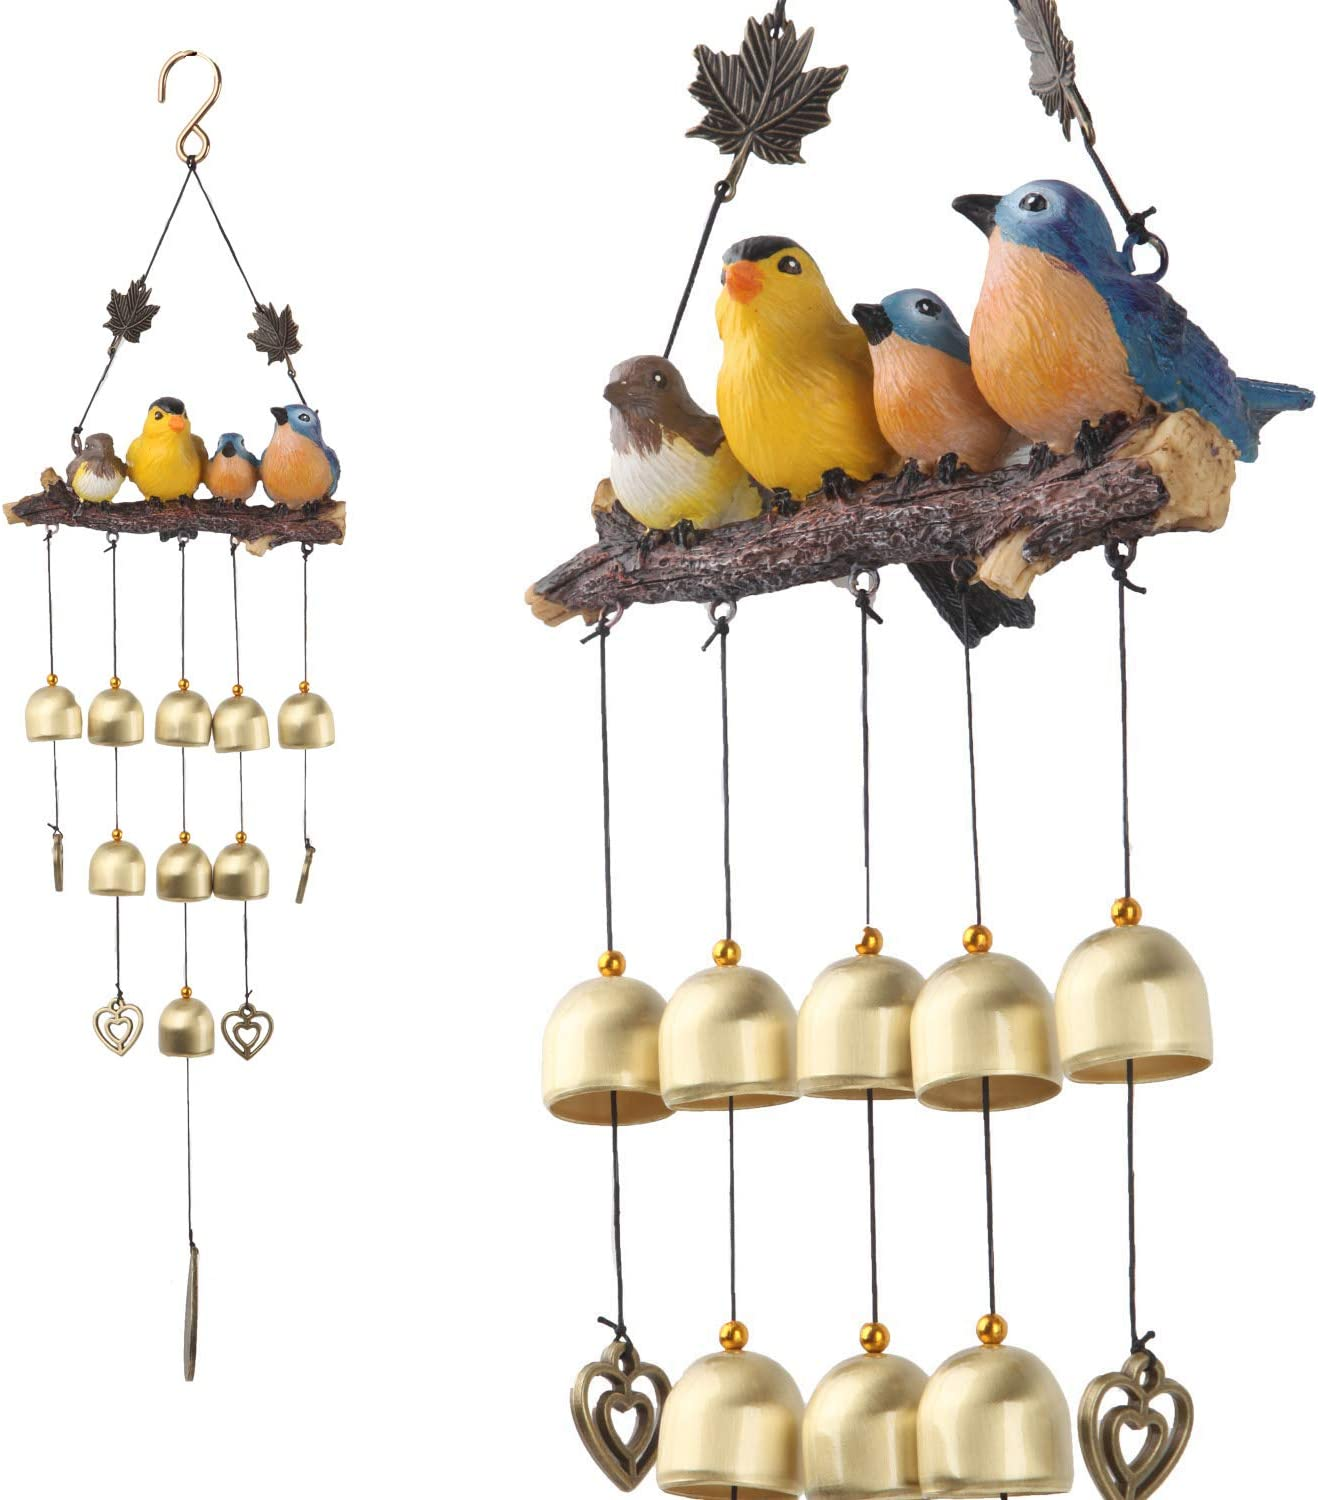 Gardenvy Birds Wind Chimes with Bells Decoration for Outdoor Garden and Home Decor - Blue